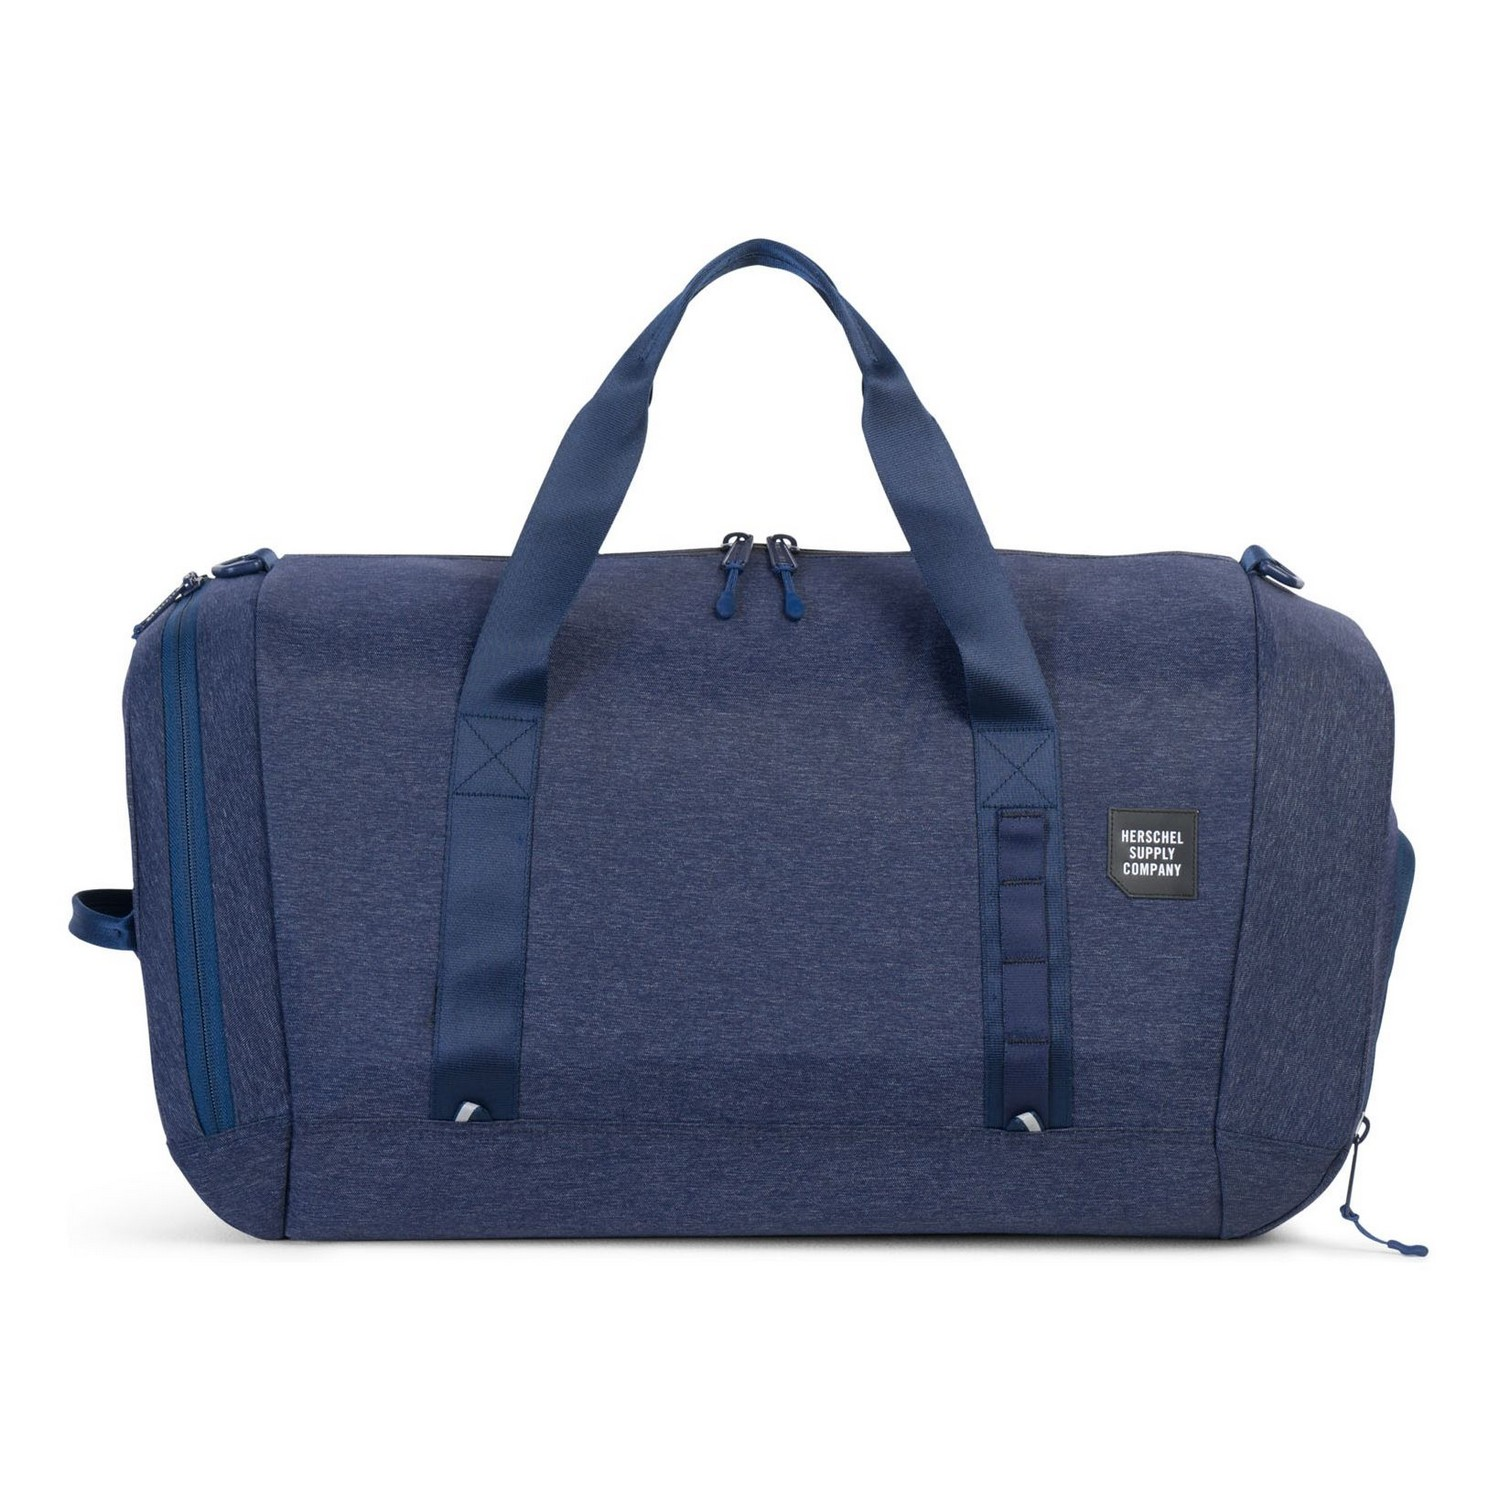 Herschel Duffle Bag | Herschel Backpack Laptop | Herschel Duffle Bags